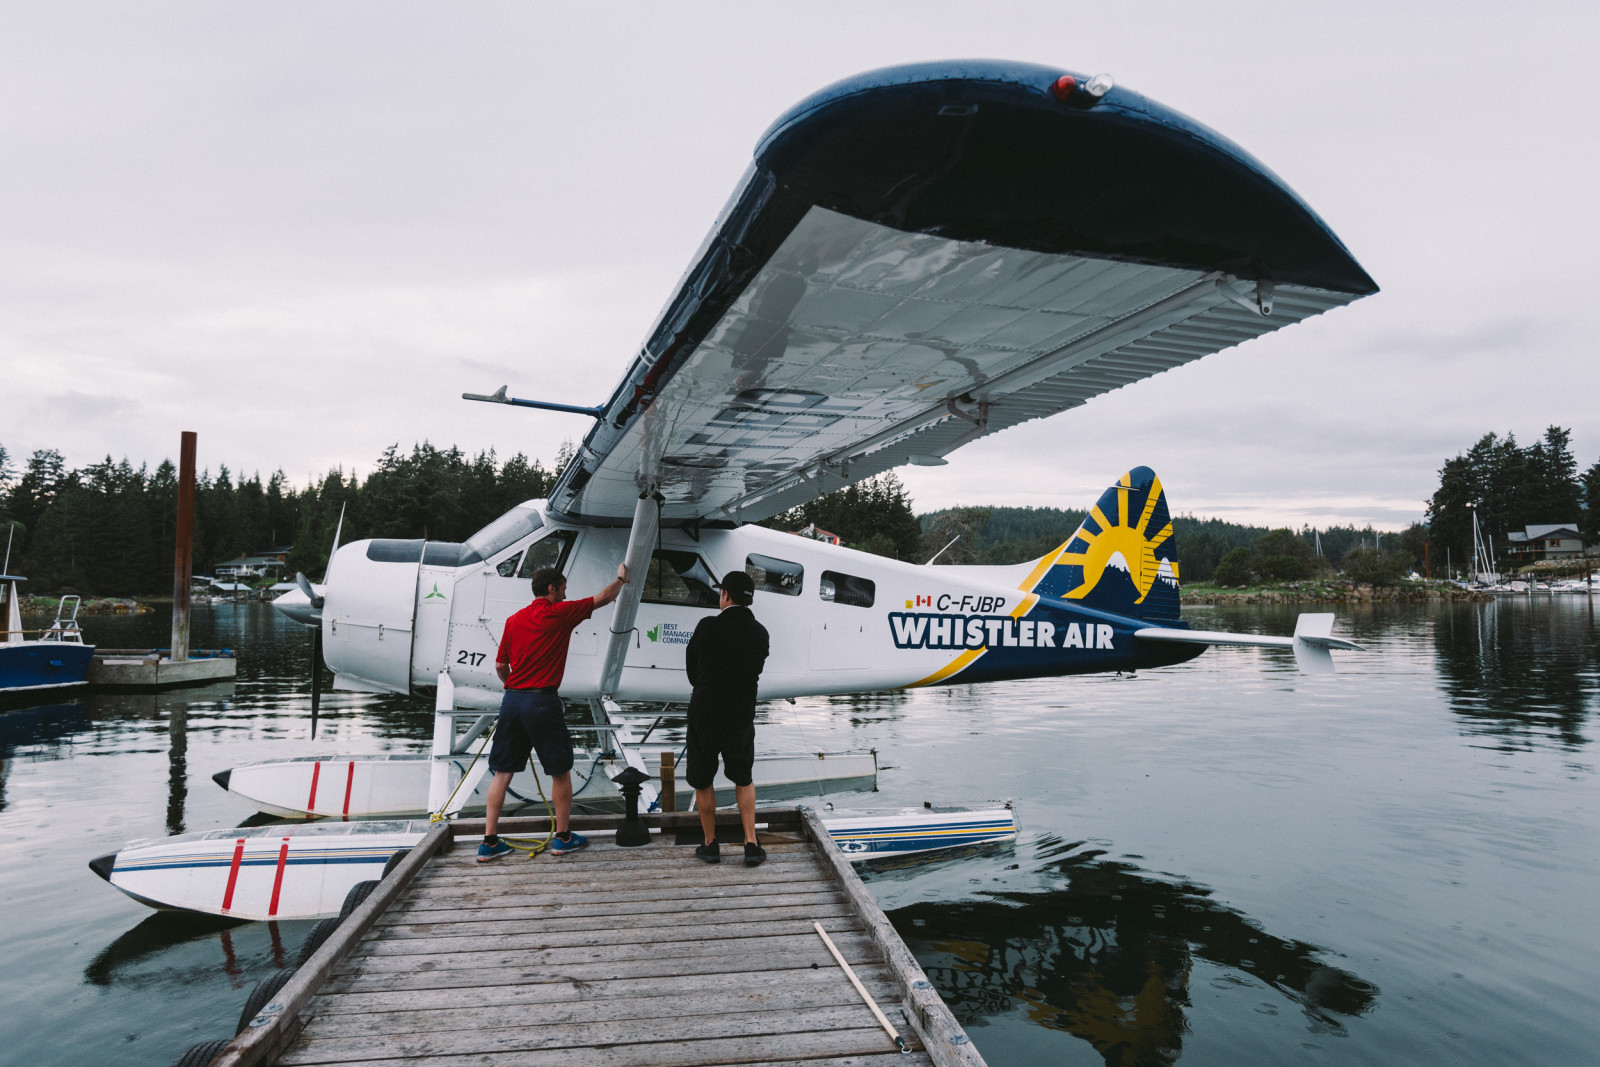 A great deal of media camps in Canada involve float planes, this was no exception.